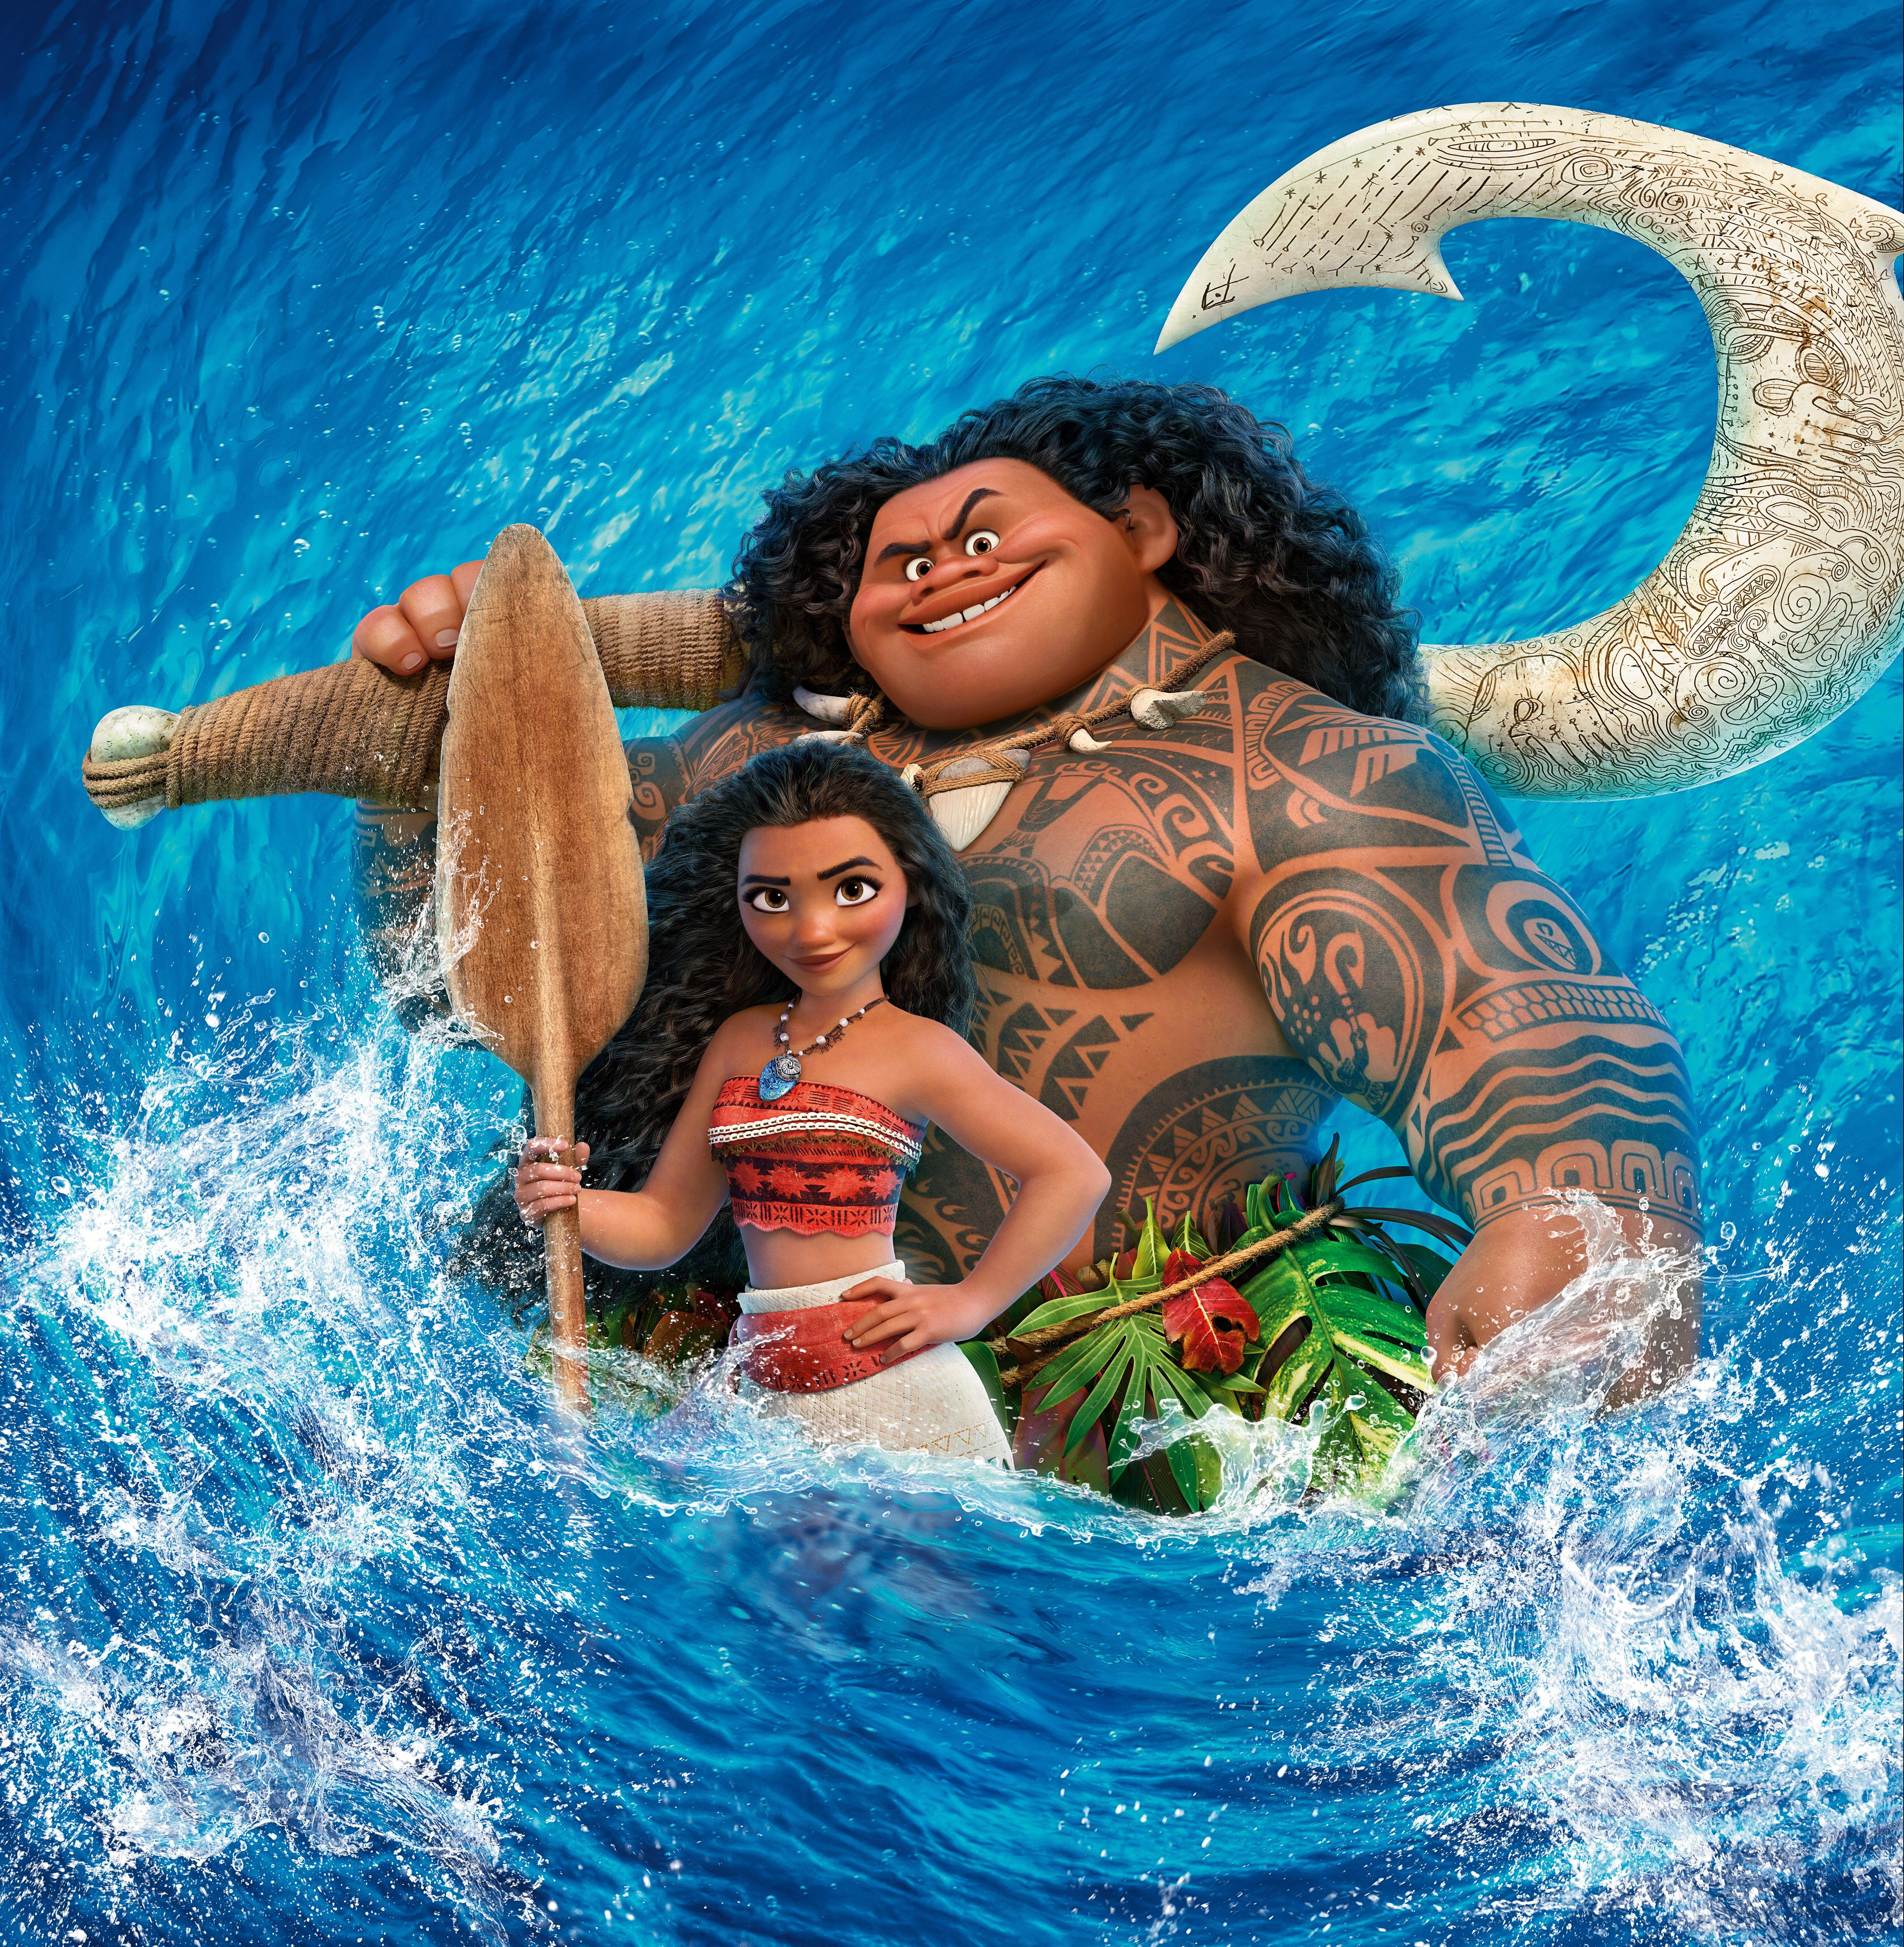 Wallpaper Moana, Animation, Disney, HD, 5K, Movies, #3776